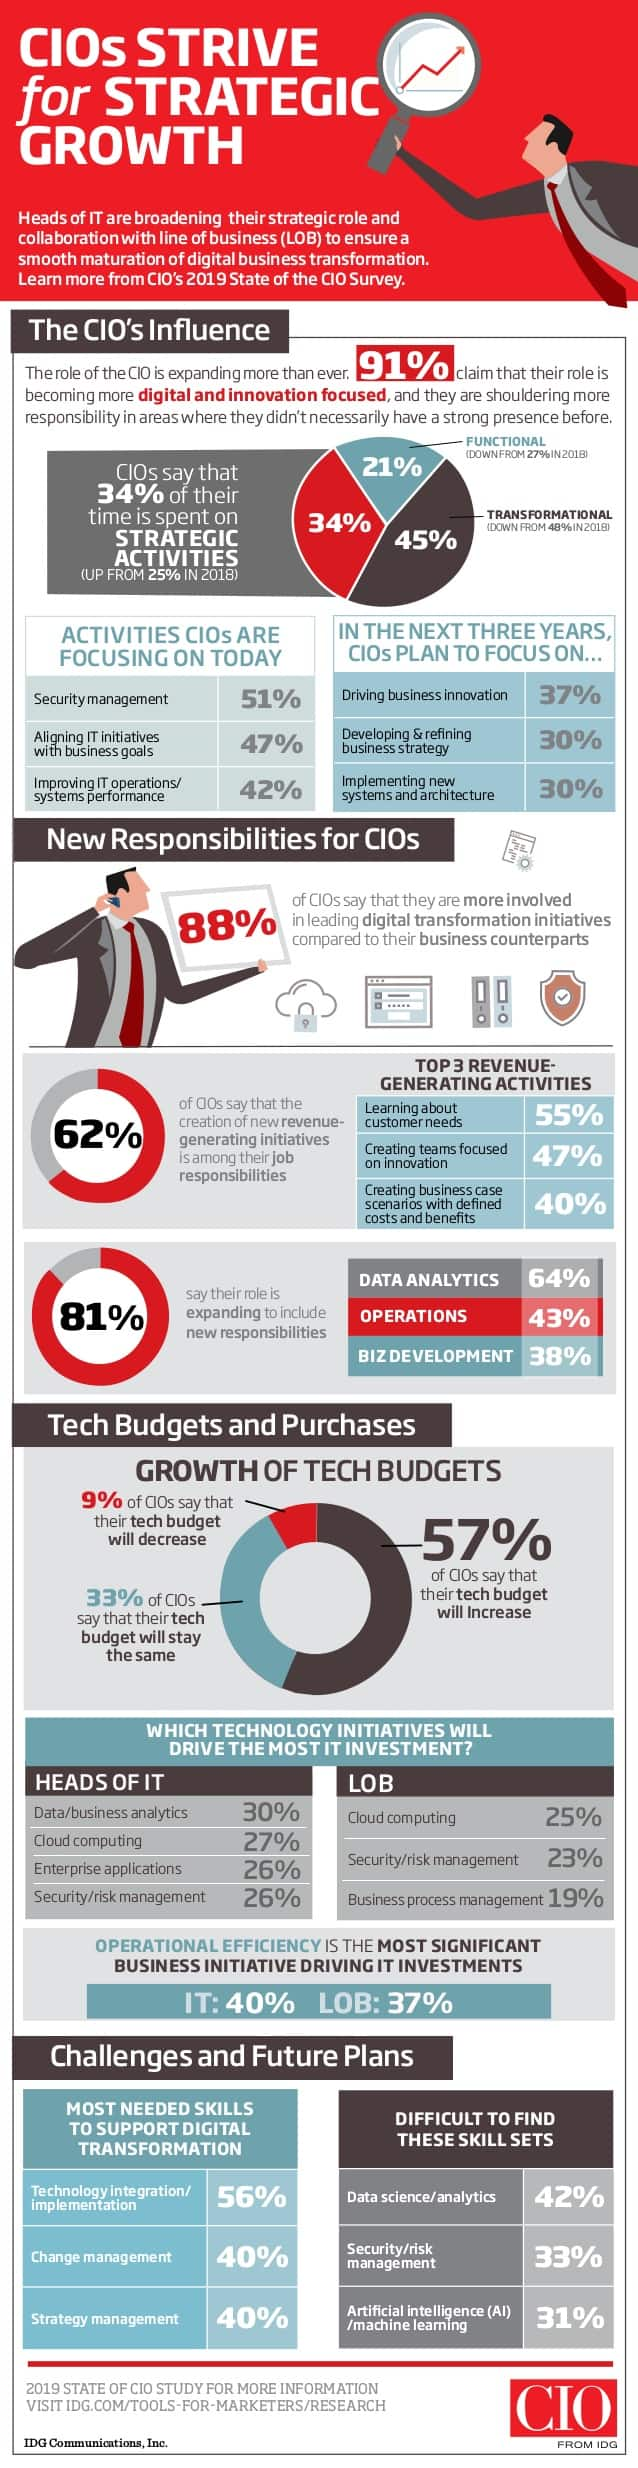 2019-state-of-the-cio-infographic-1-638